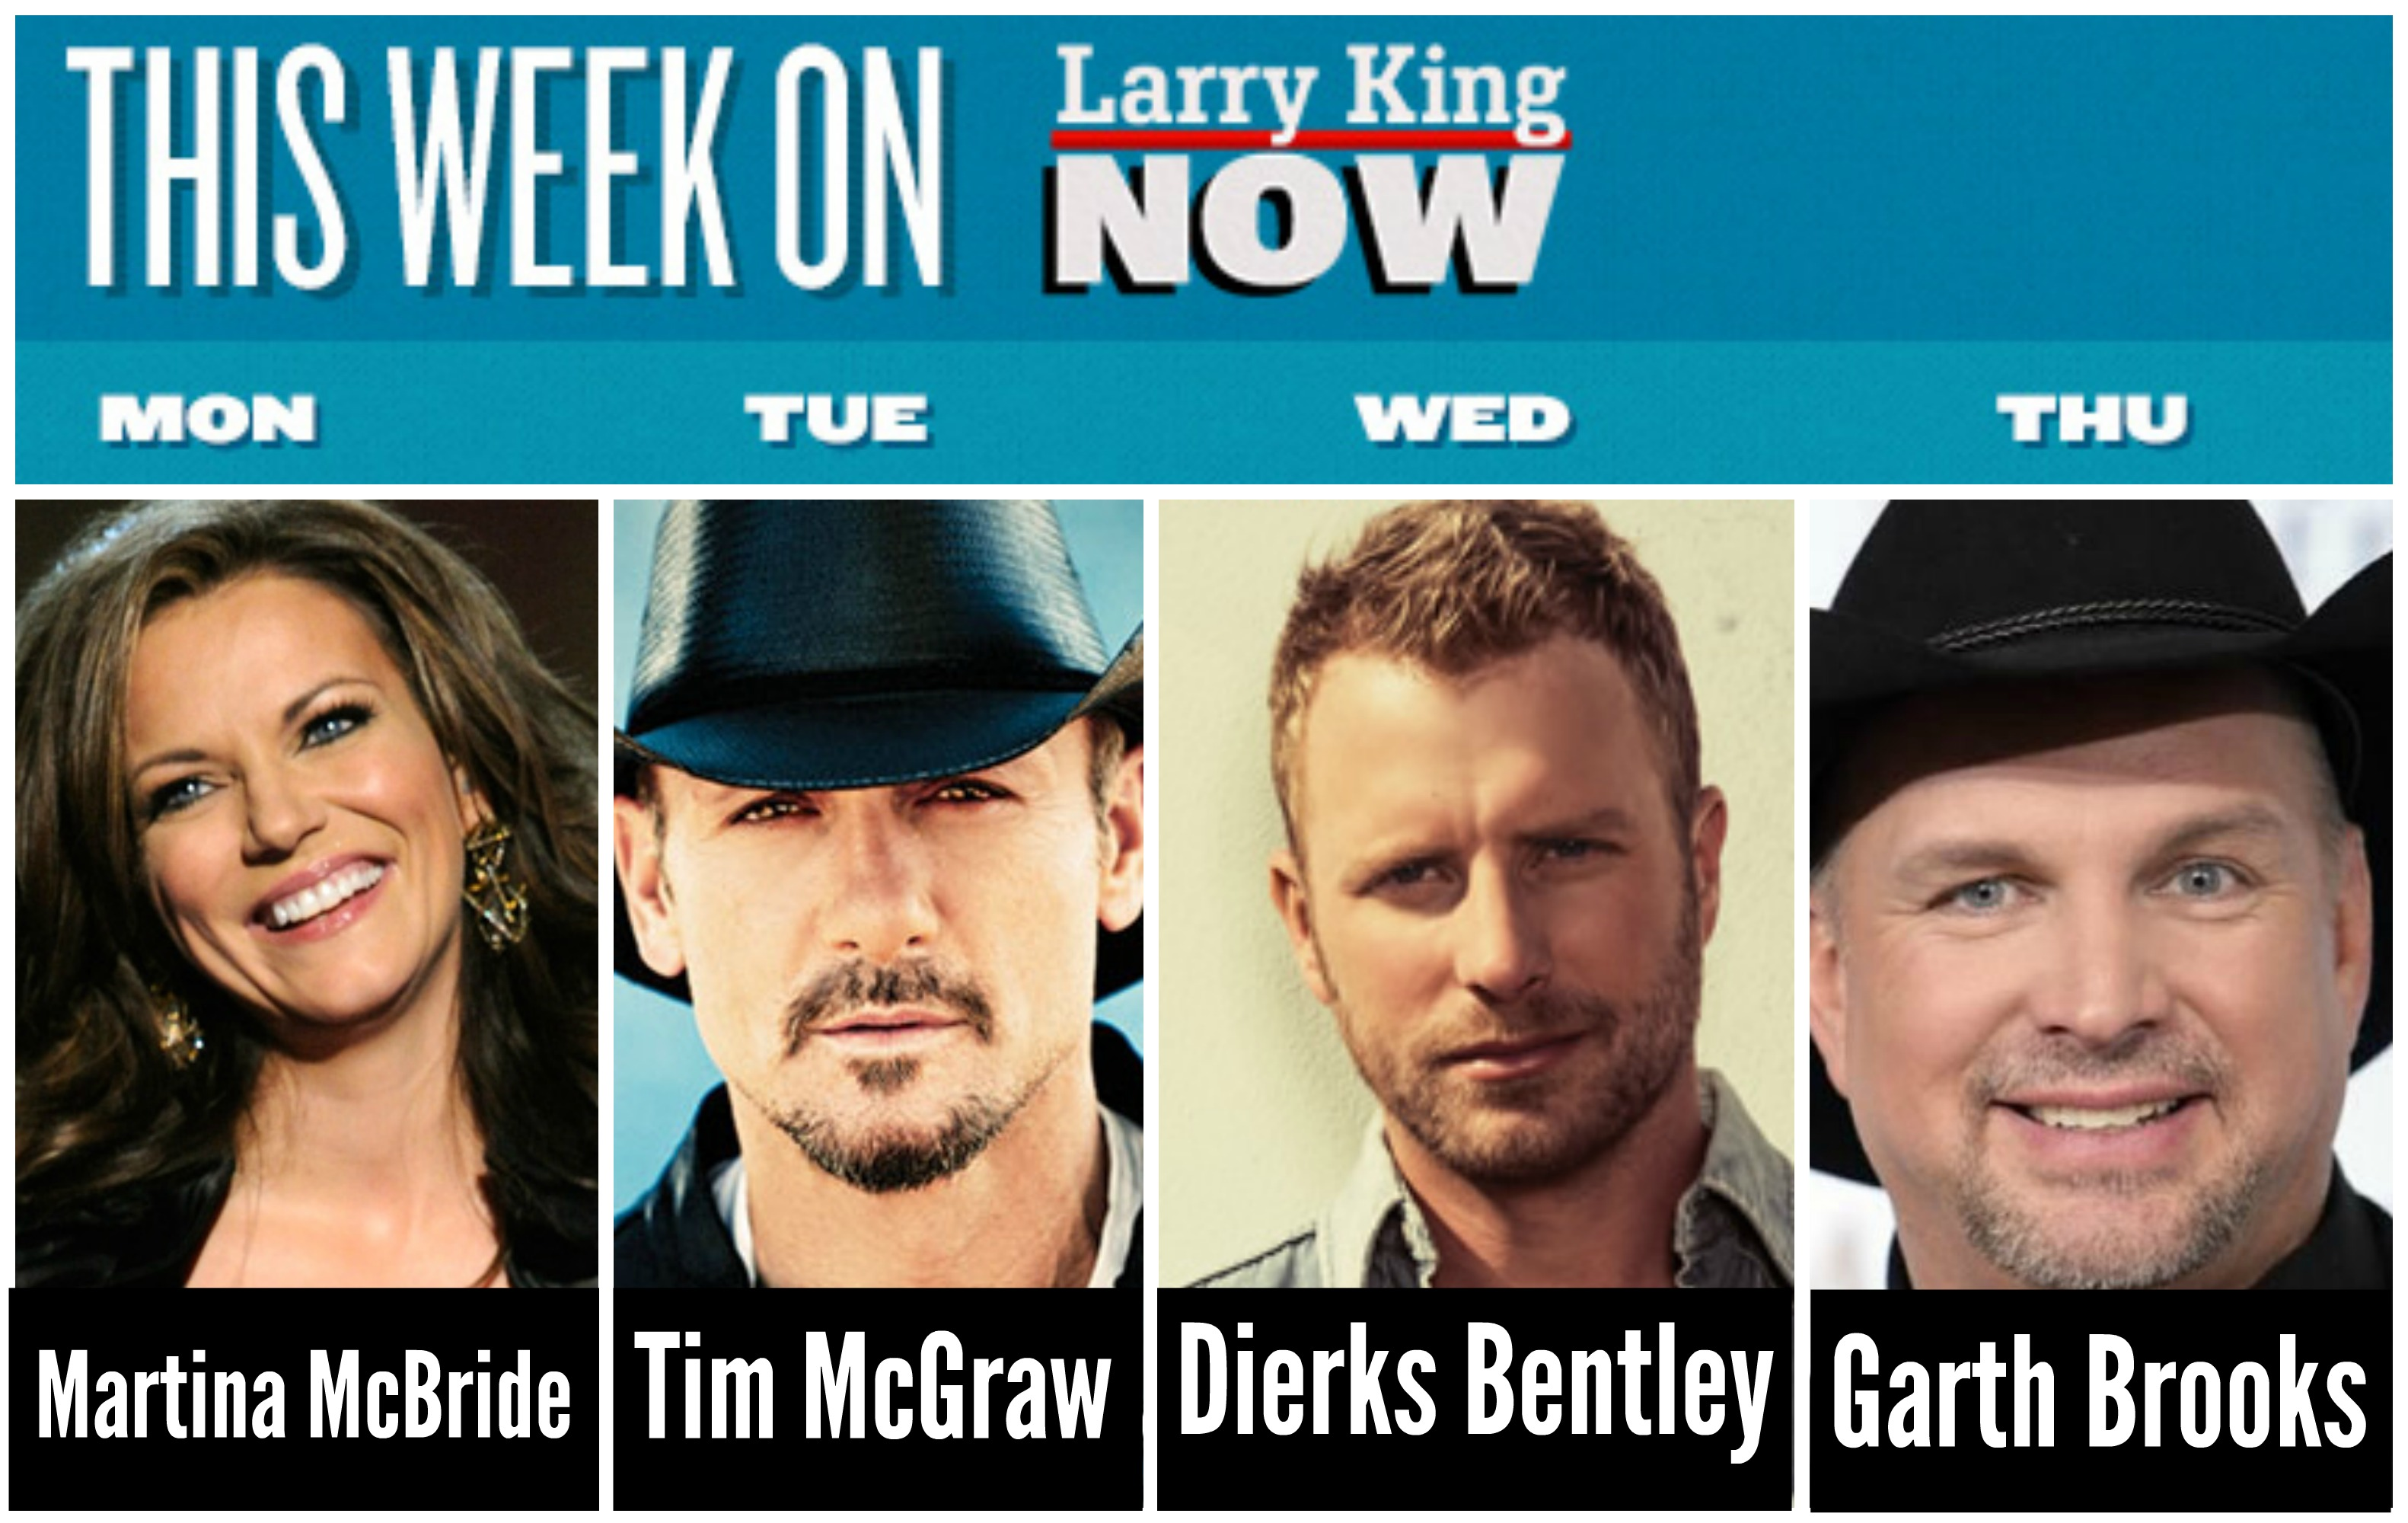 Larry King Now with Country Music Legends Martina McBride, Tim McGraw, Dierks Bentley & Garth Brooks